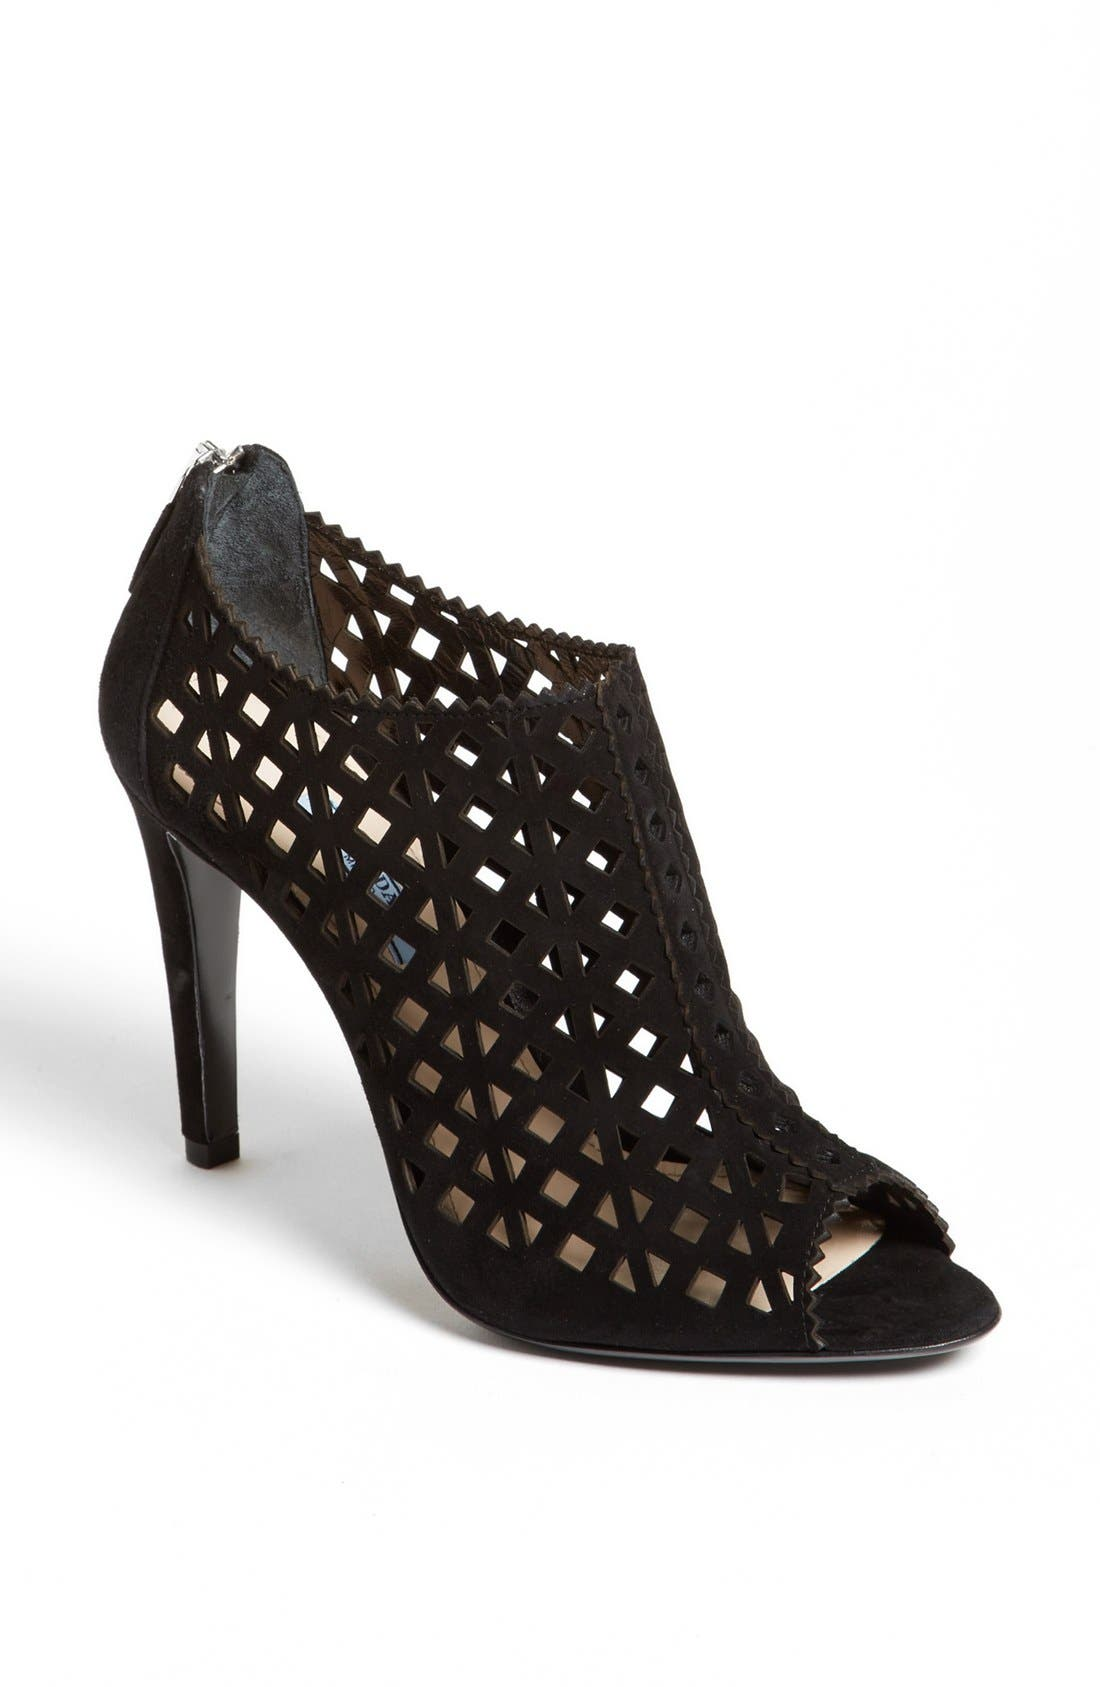 Alternate Image 1 Selected - Prada Laser Cut Open Toe Bootie